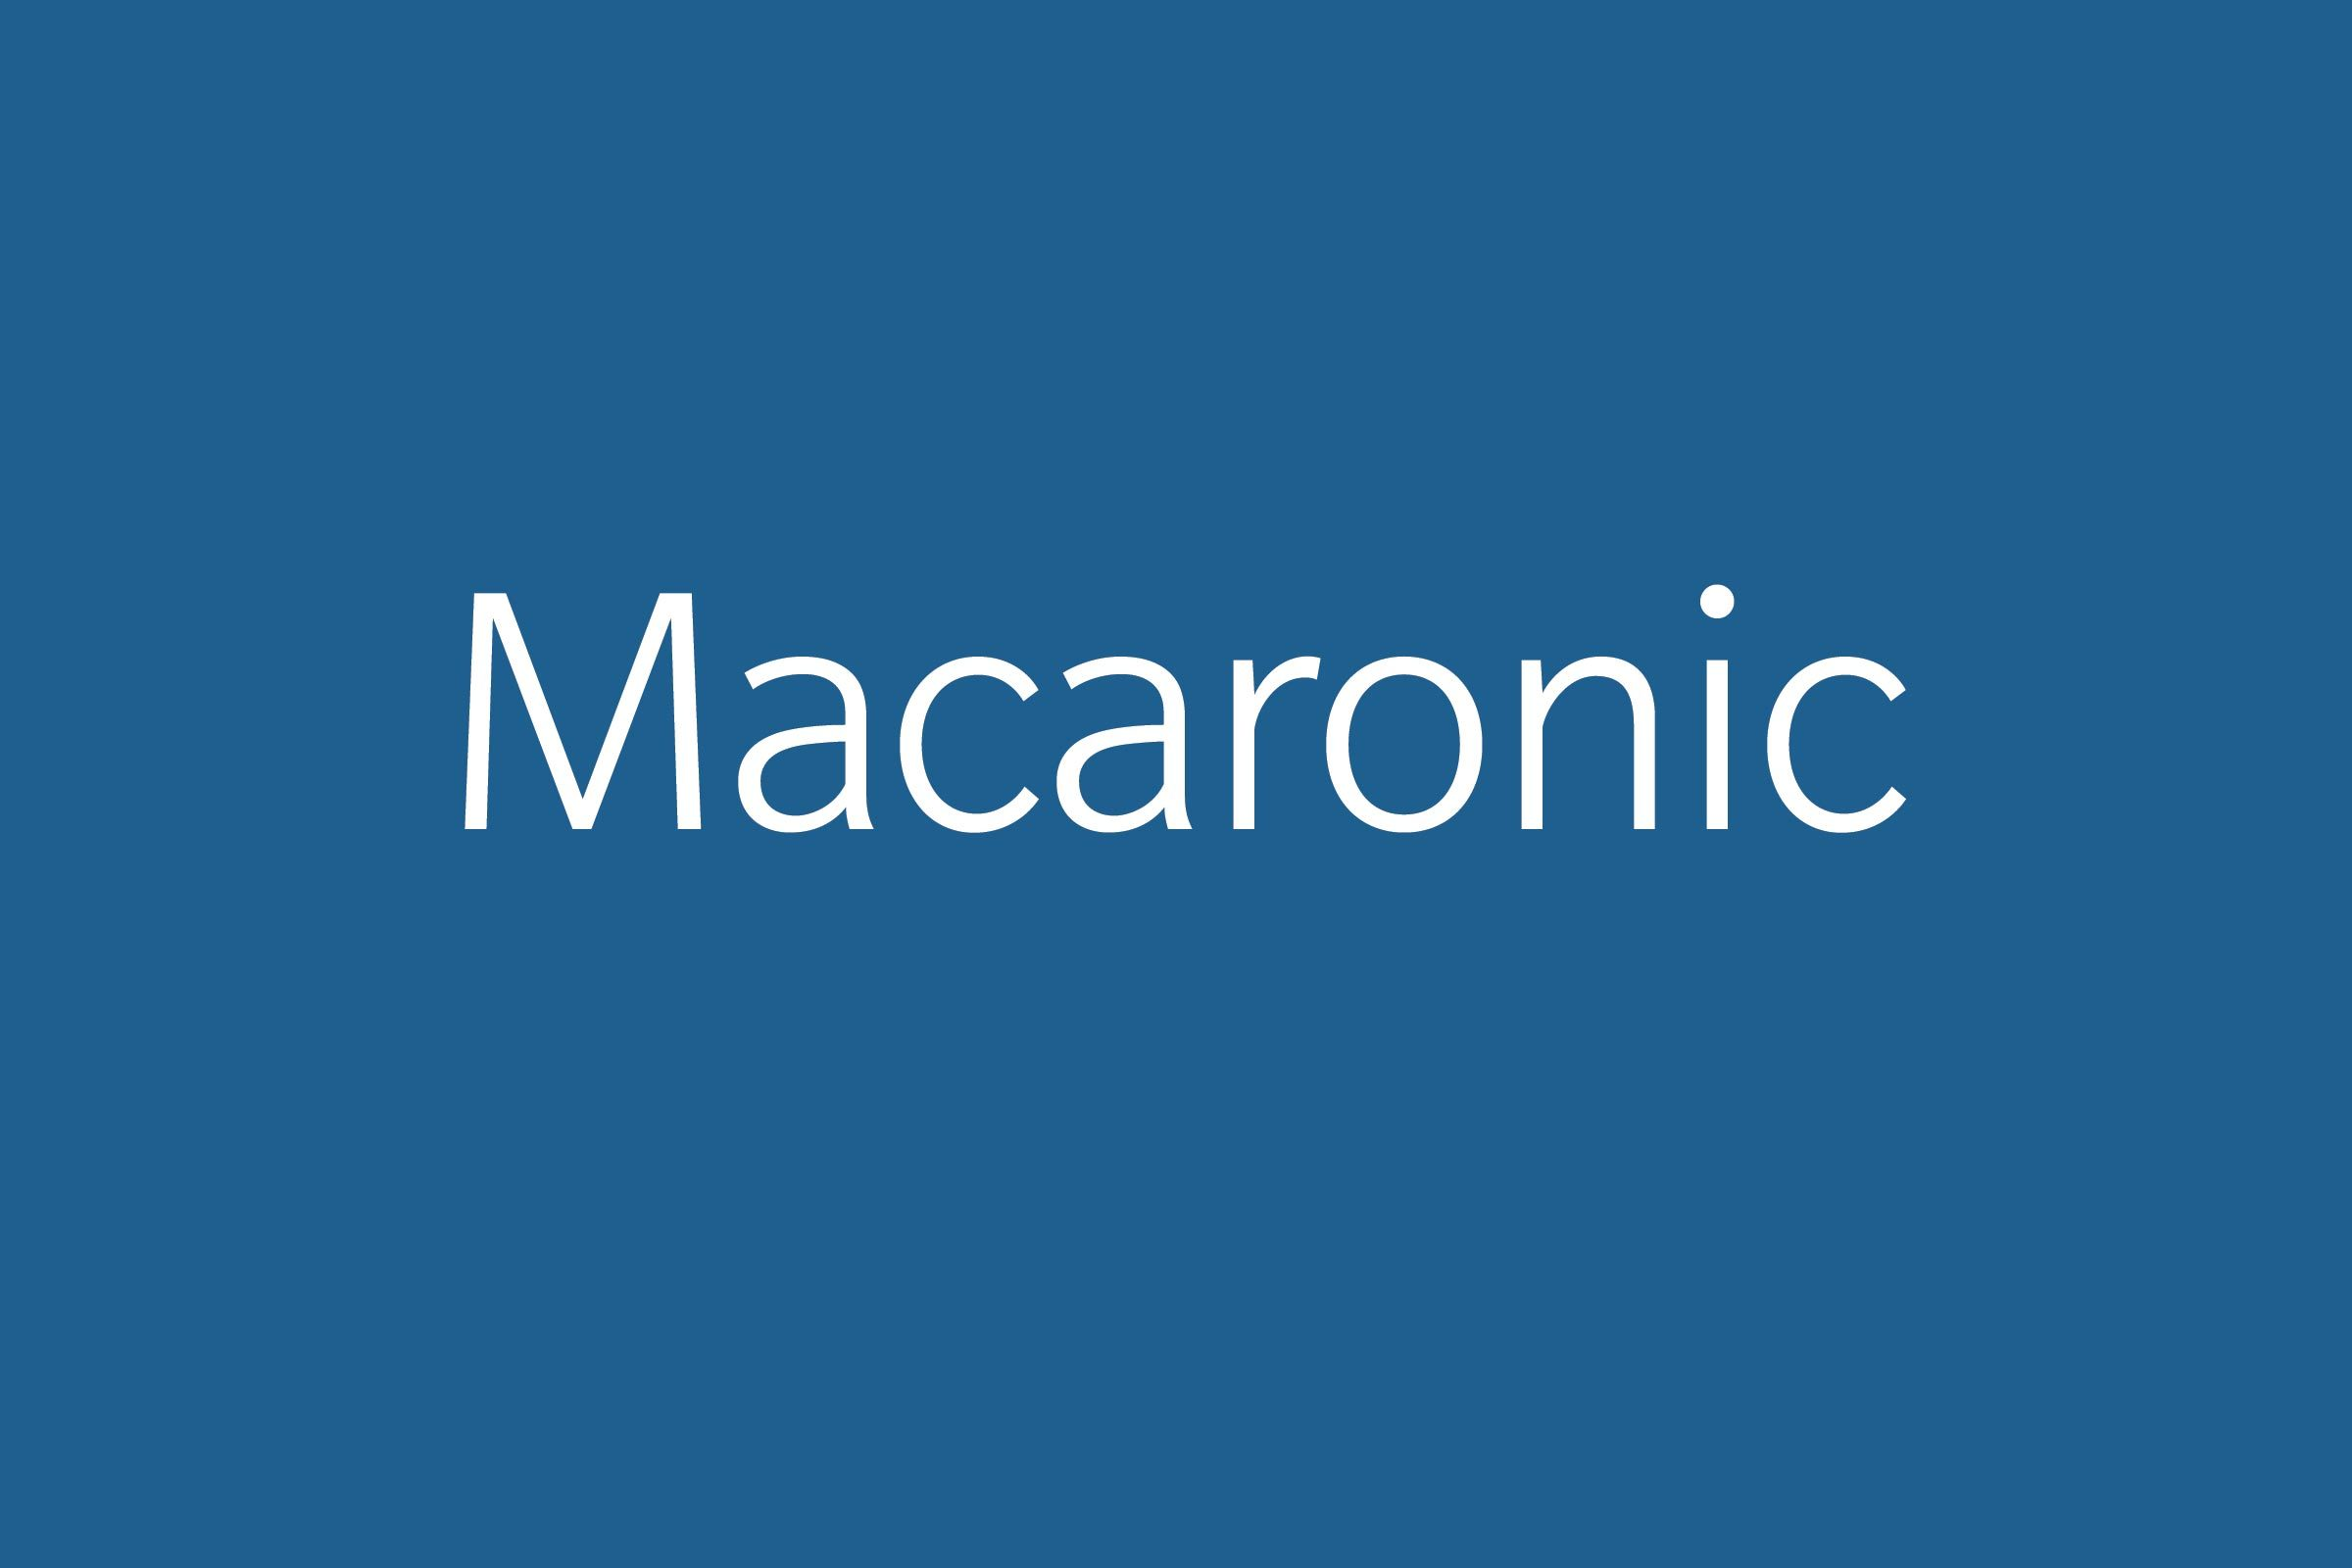 macaronic funny word Funny words